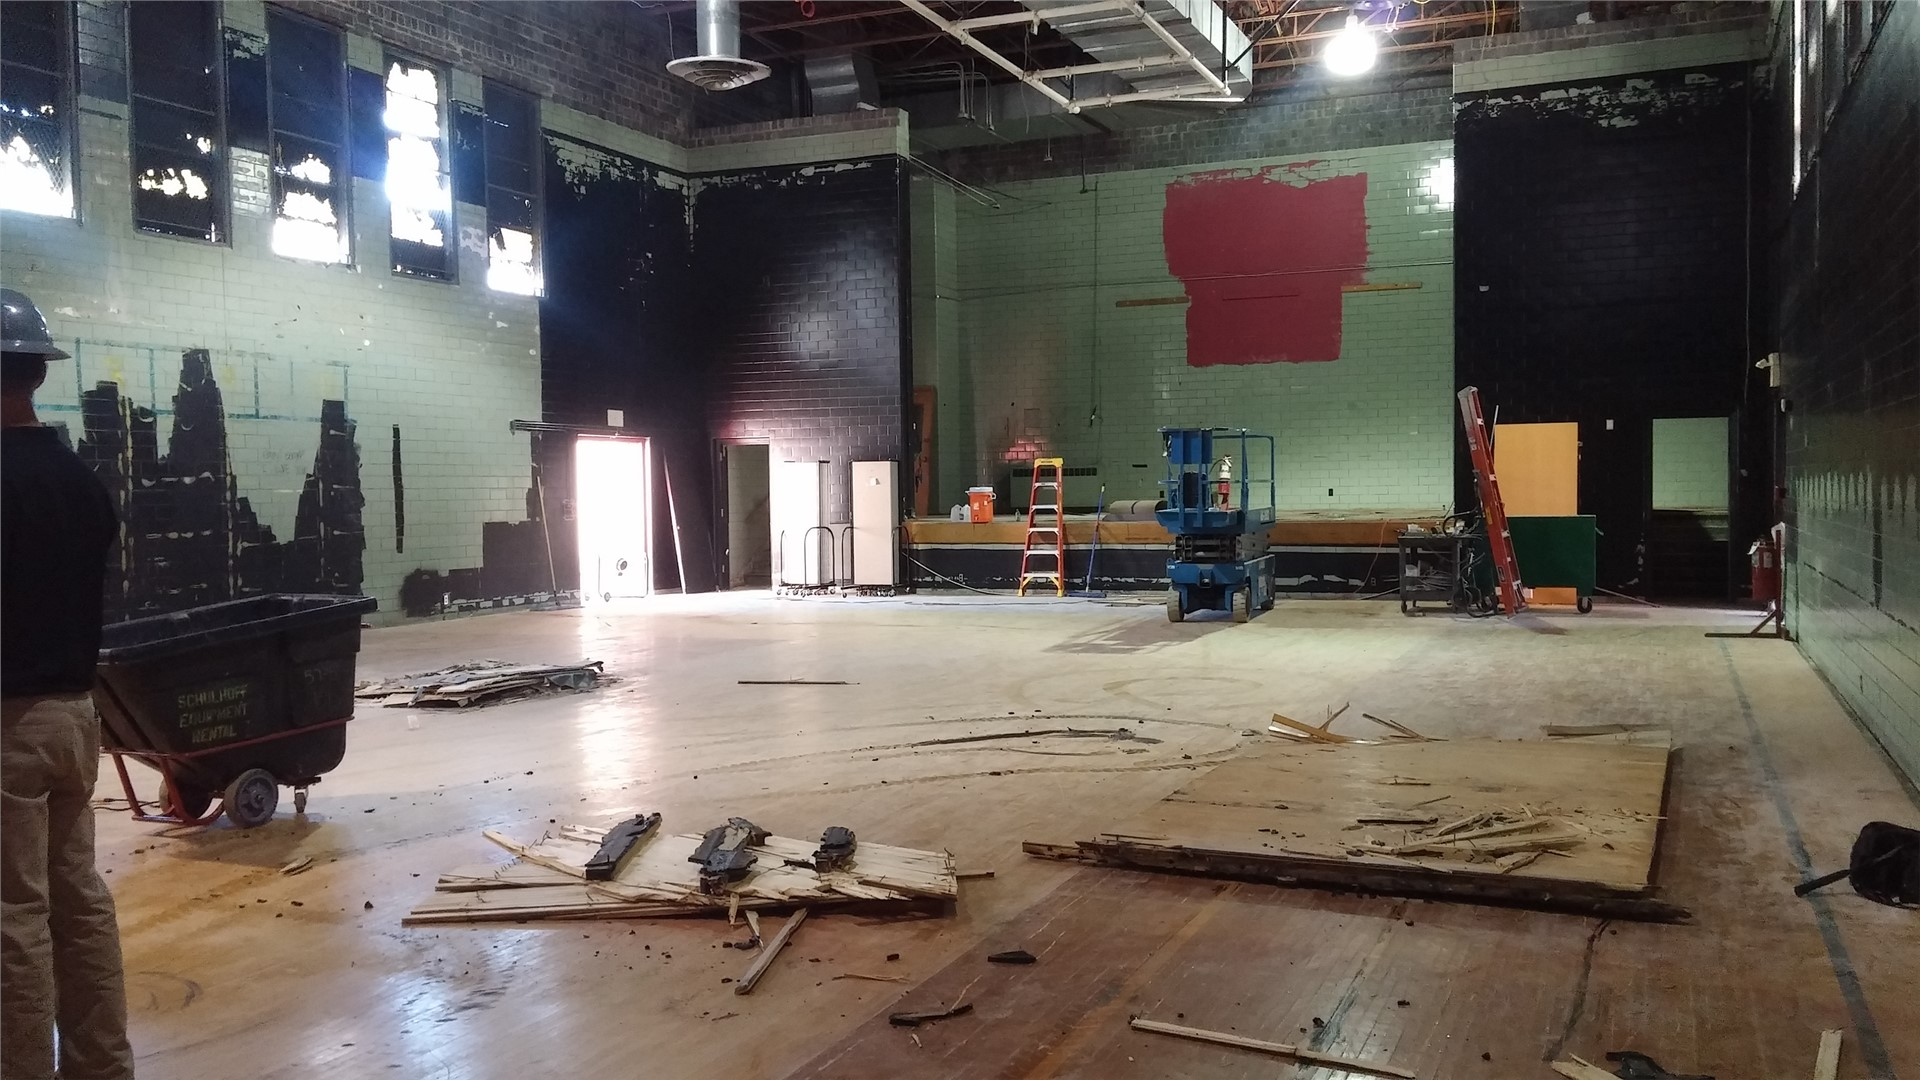 Pieces of the gym floor that have been removed in the gutted theater